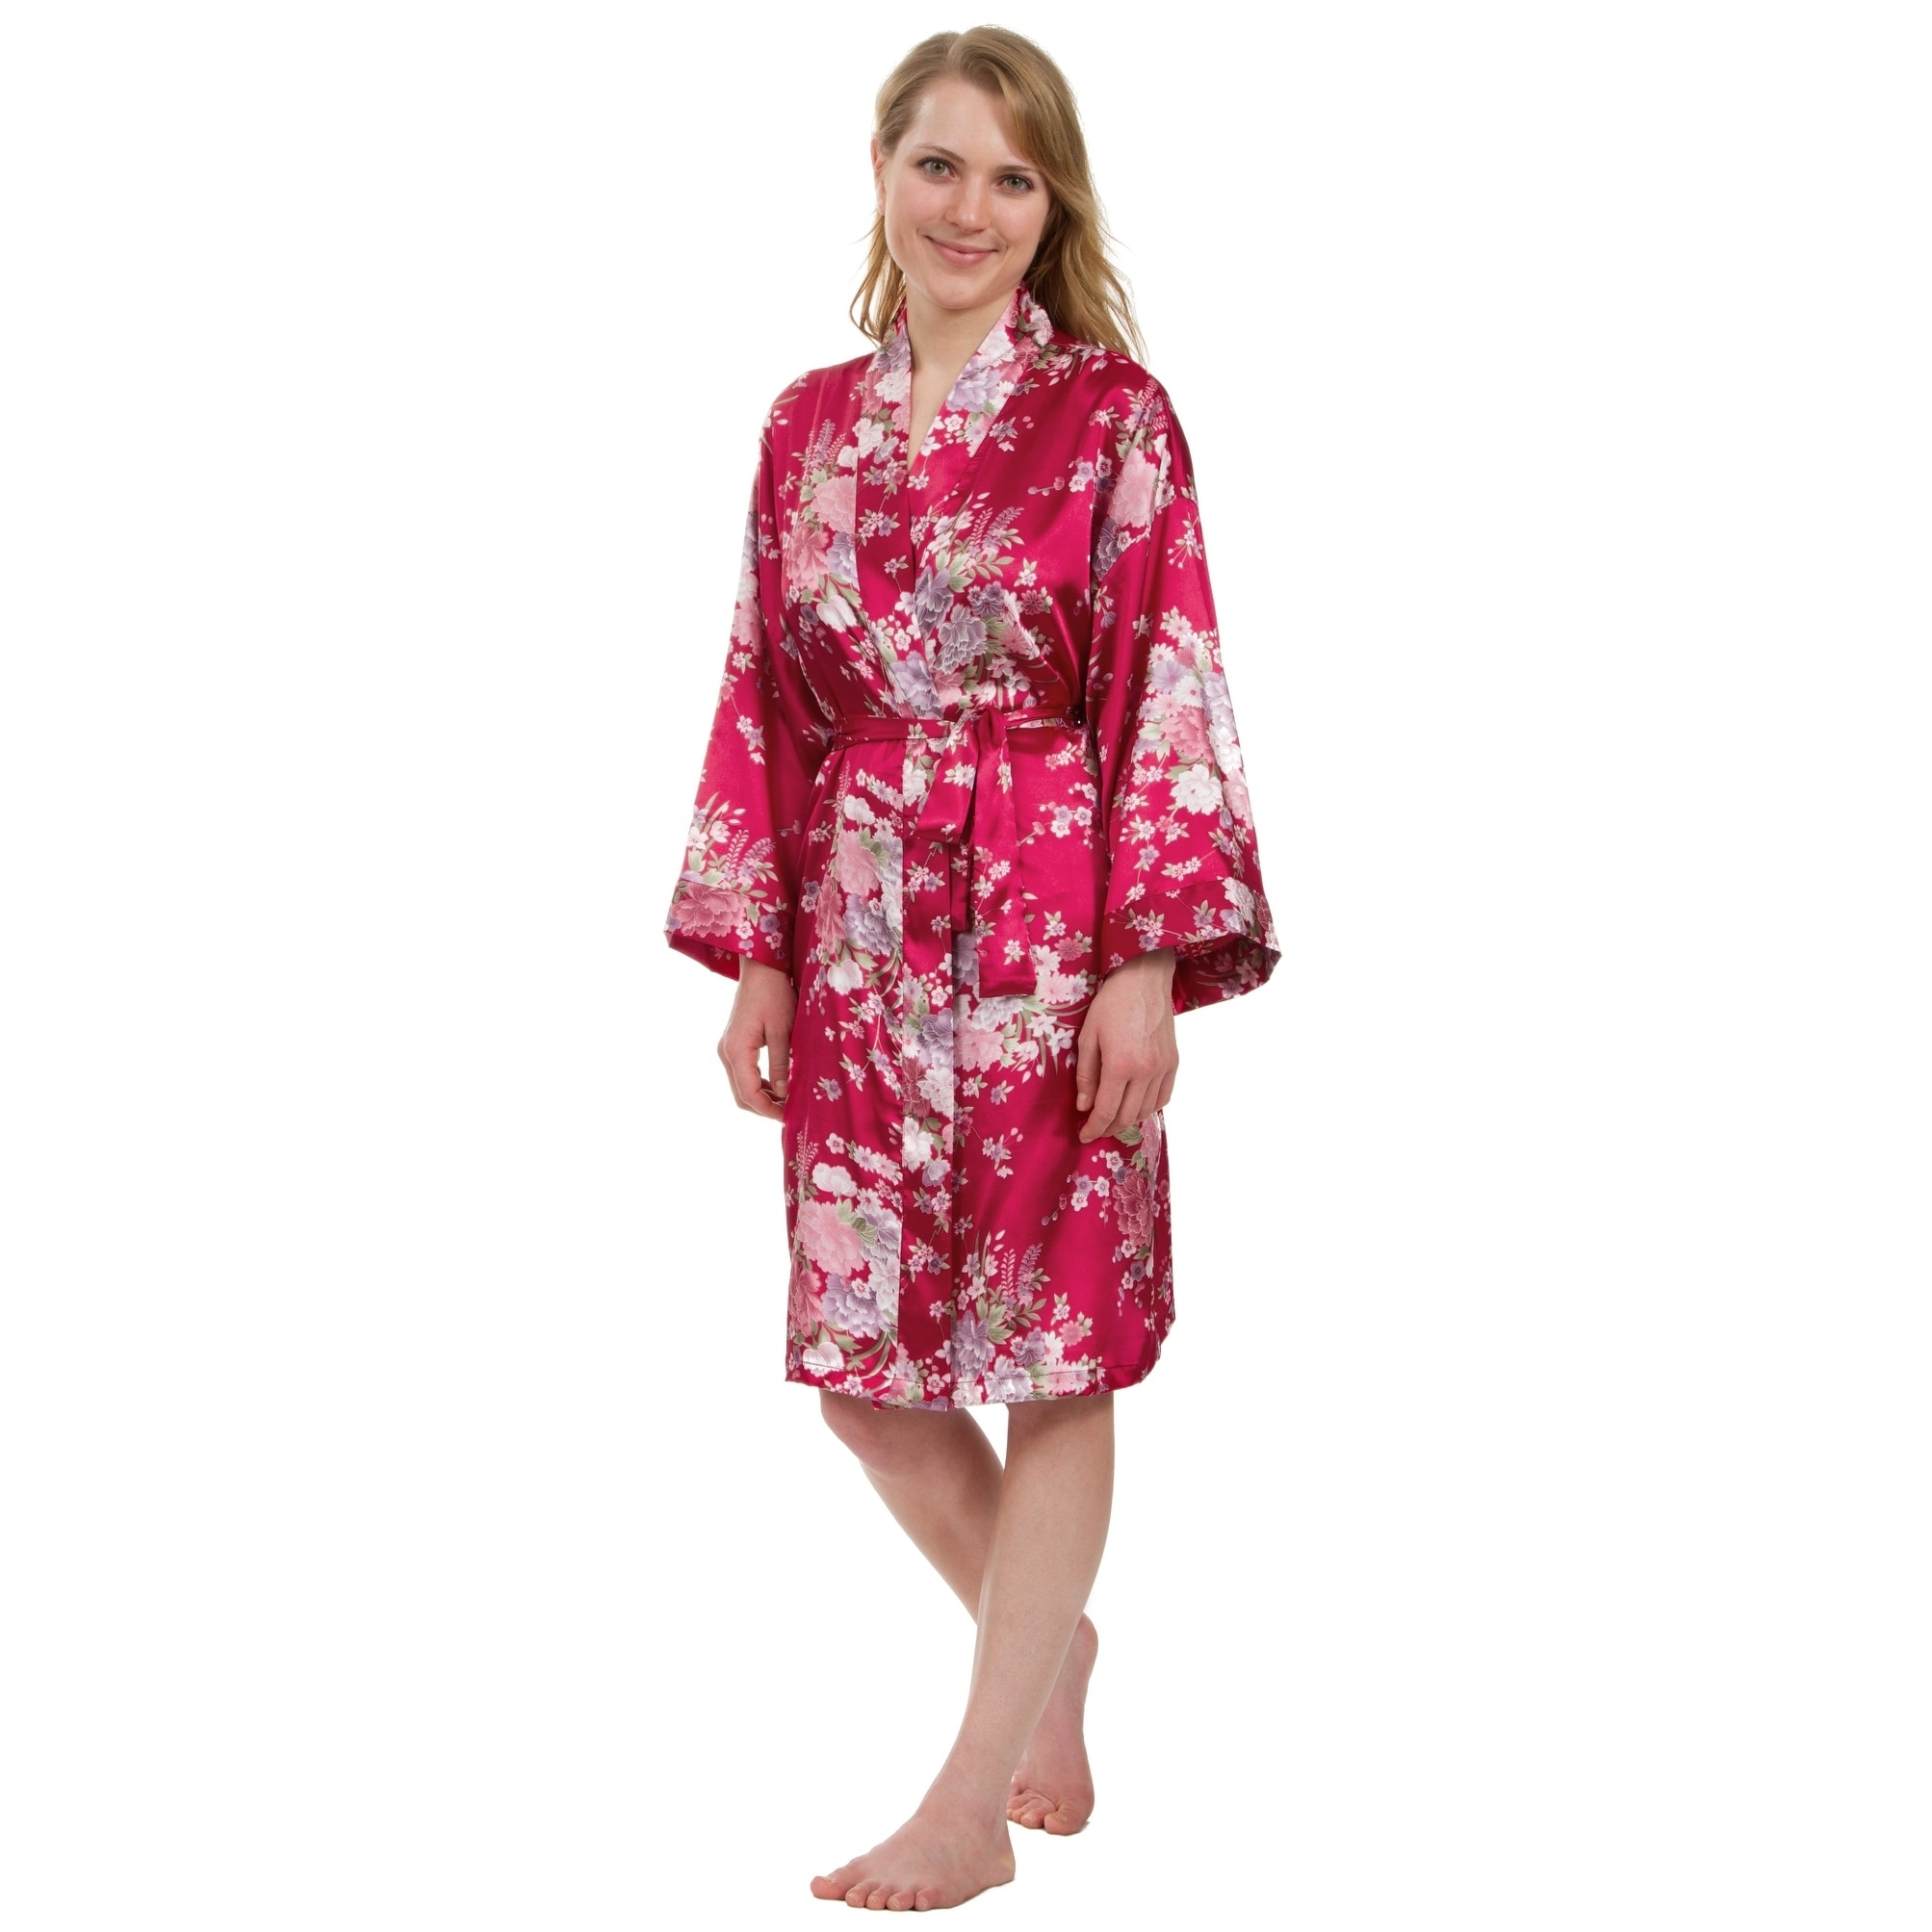 65b851868 Shop Leisureland Women's Knee-Length Floral Satin Robe - Free Shipping On  Orders Over $45 - Overstock - 18262733